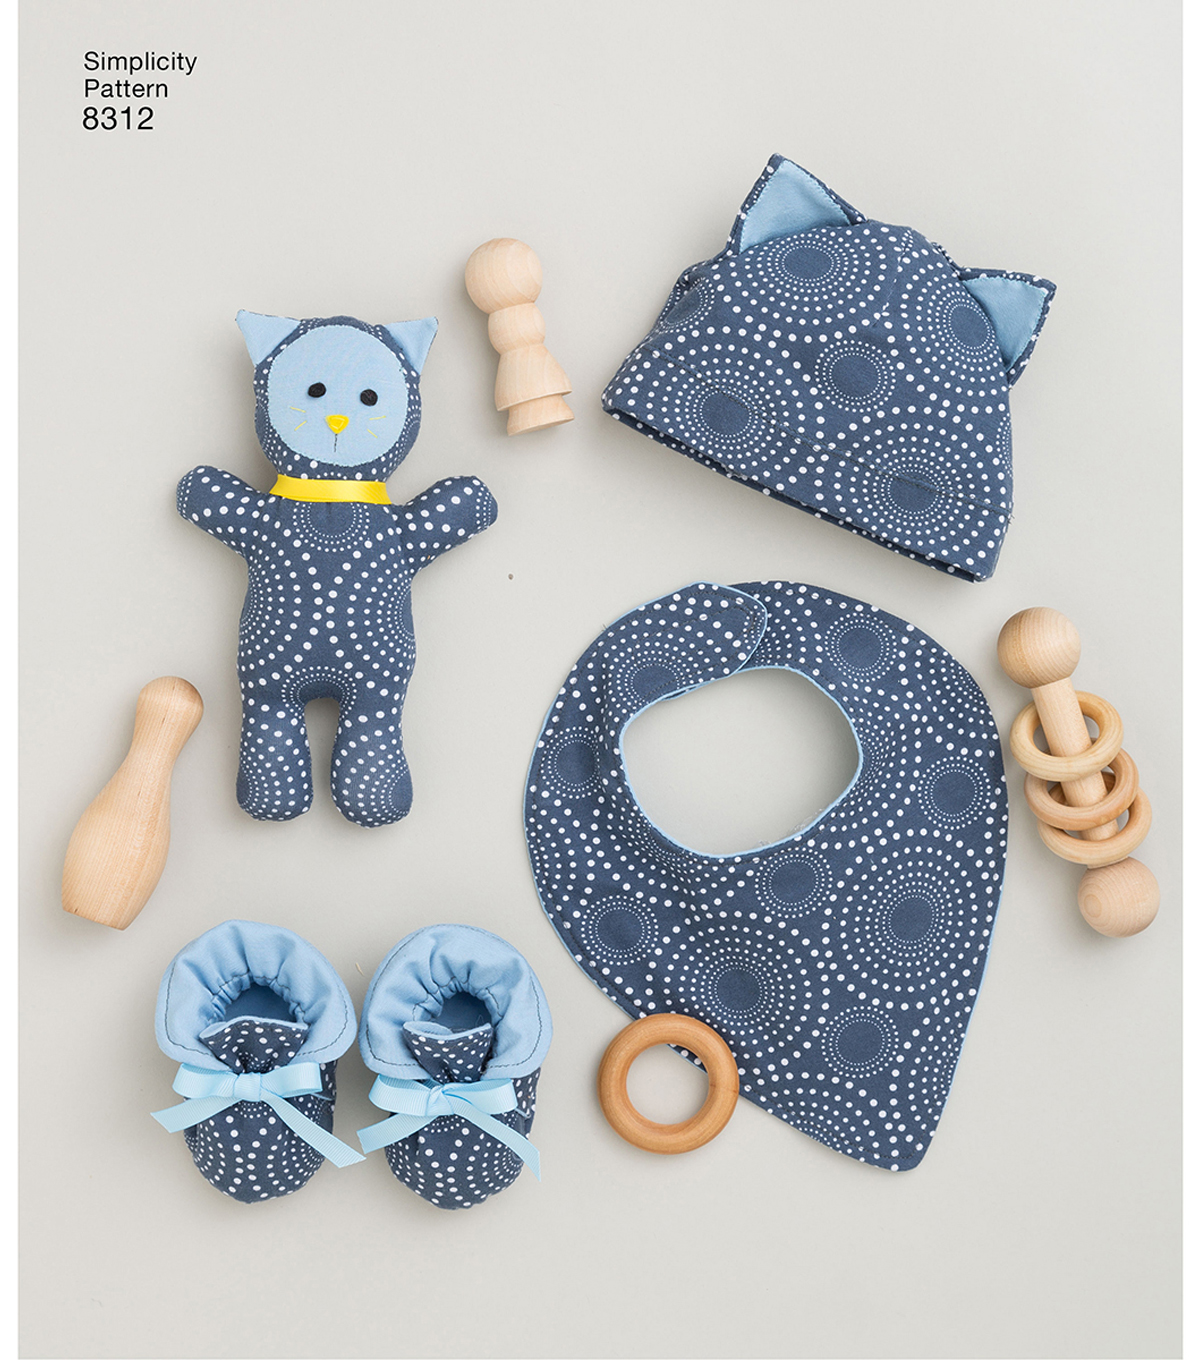 Simplicity Pattern 8312 Knit Baby Gifts & Nursing Shawl